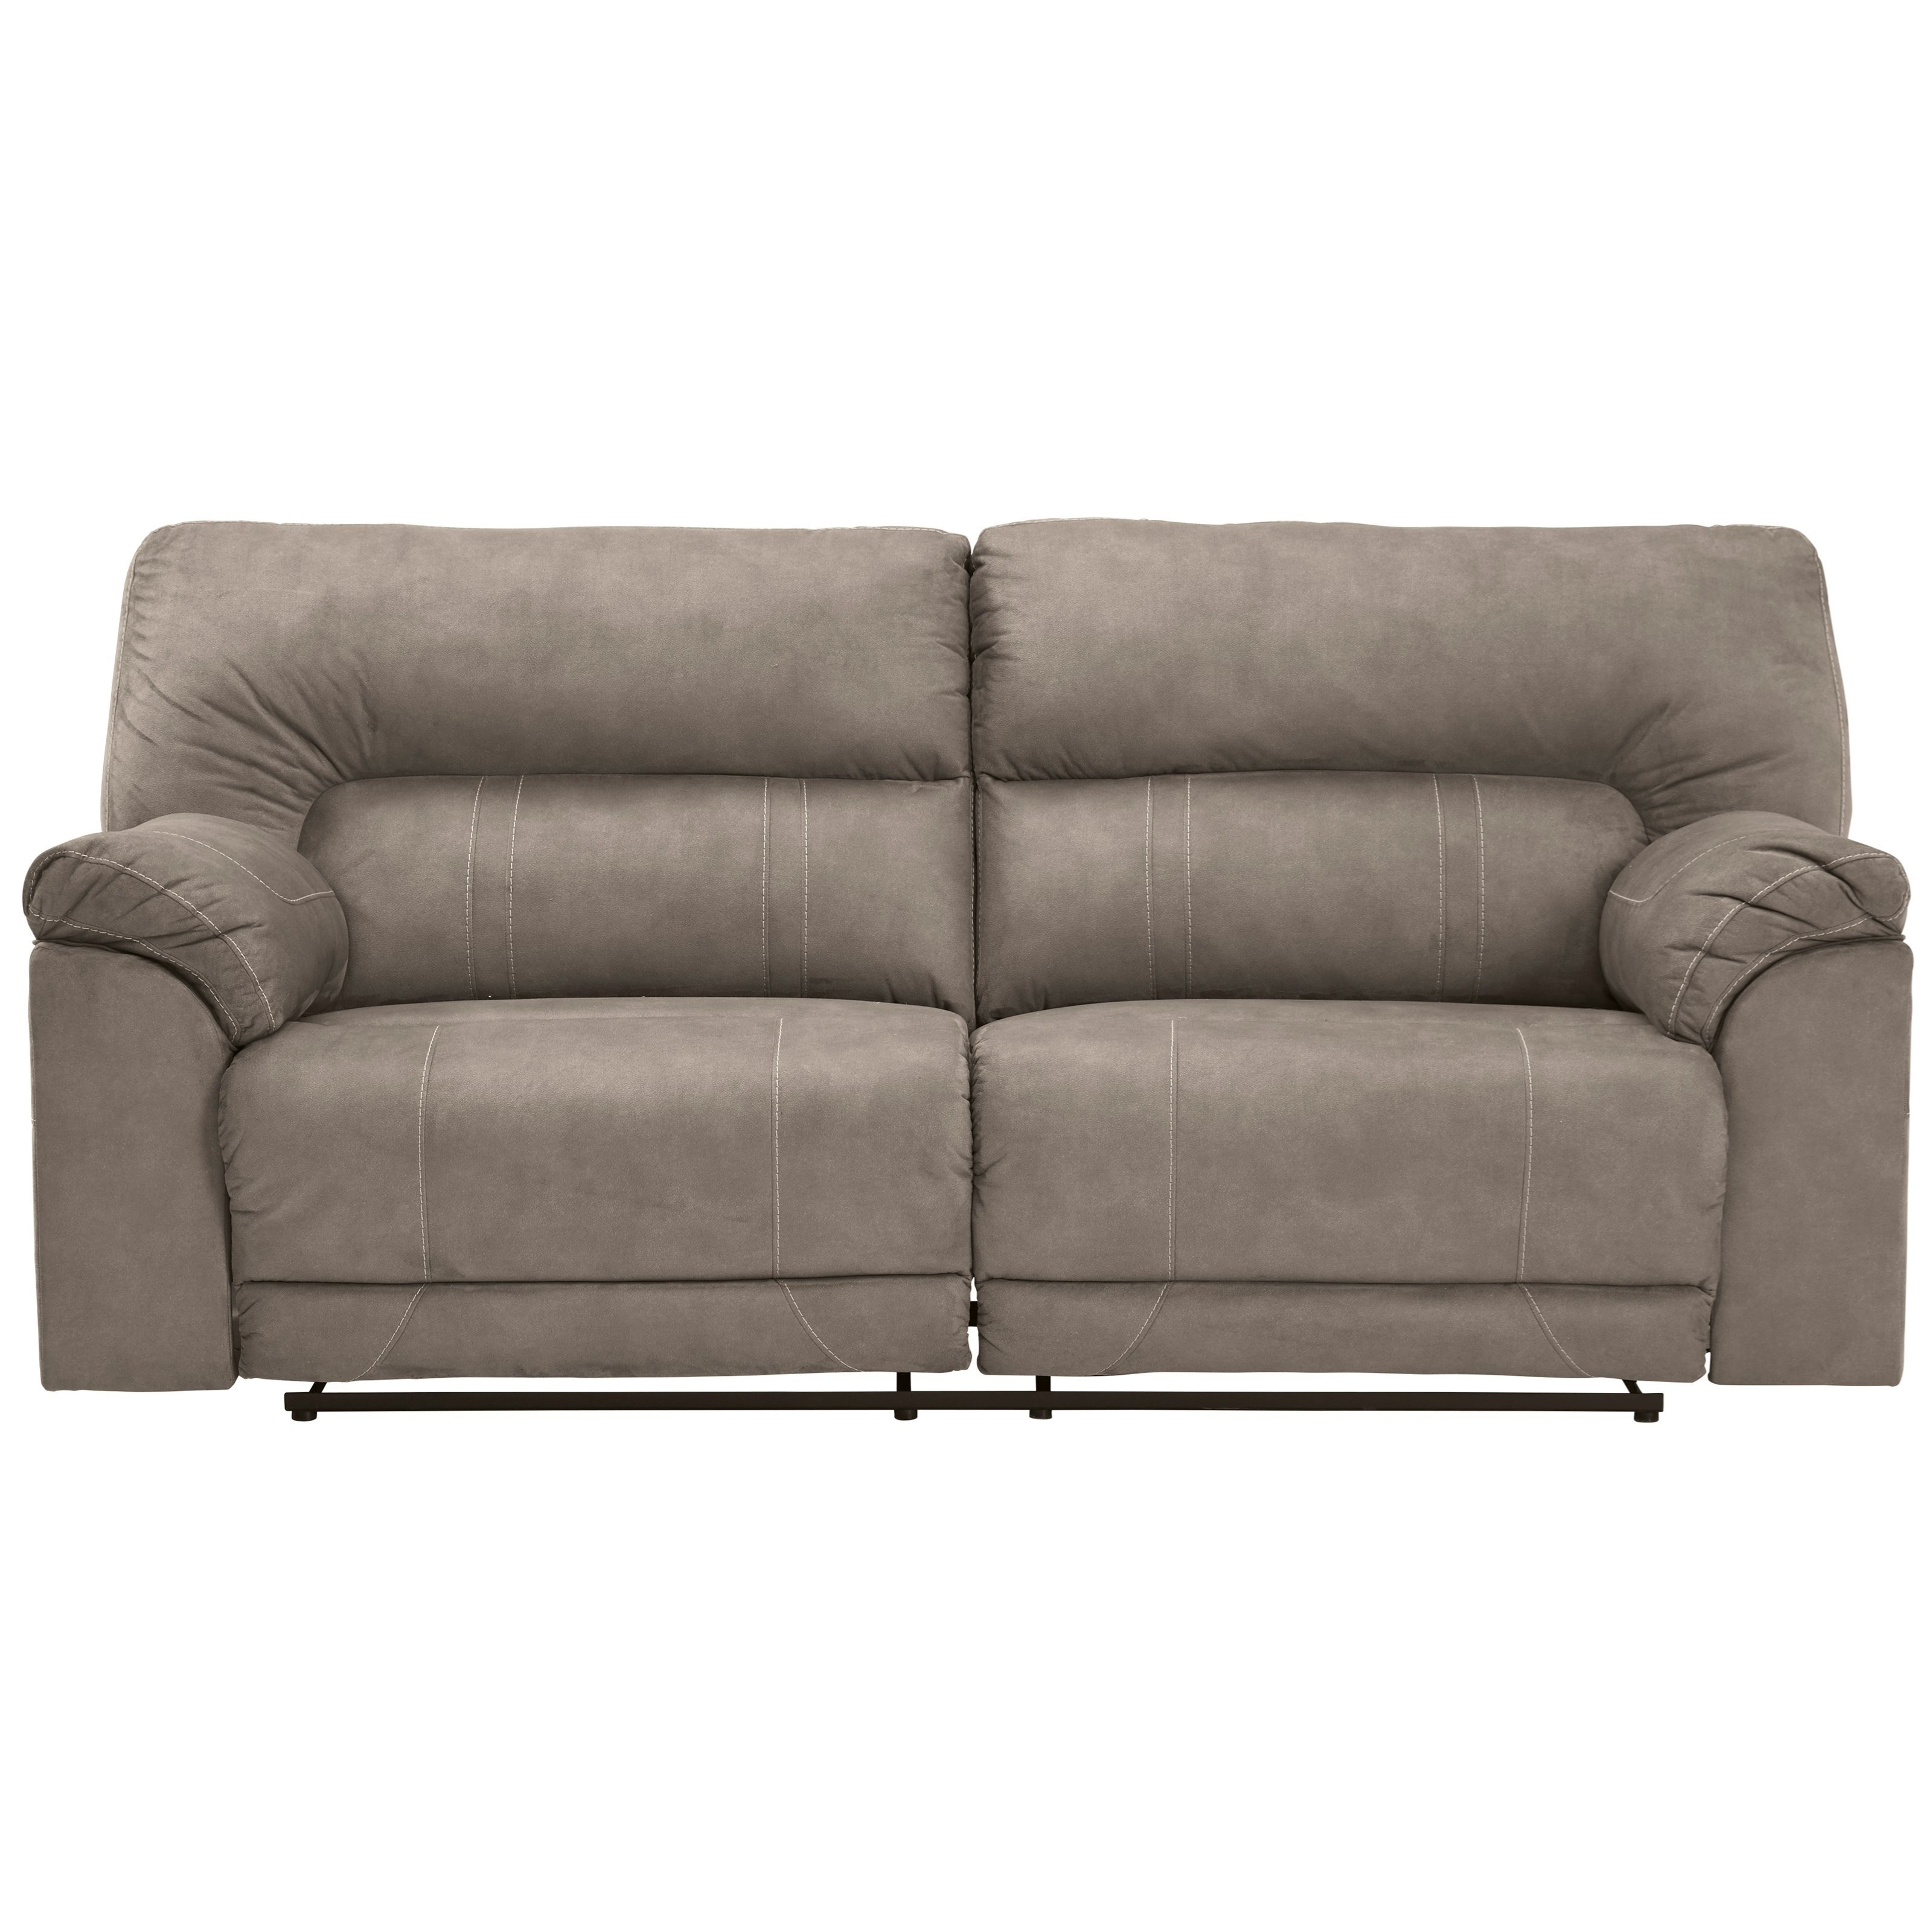 Cavalcade Two-Seat Reclining Power Sofa by Benchcraft at Zak's Warehouse Clearance Center